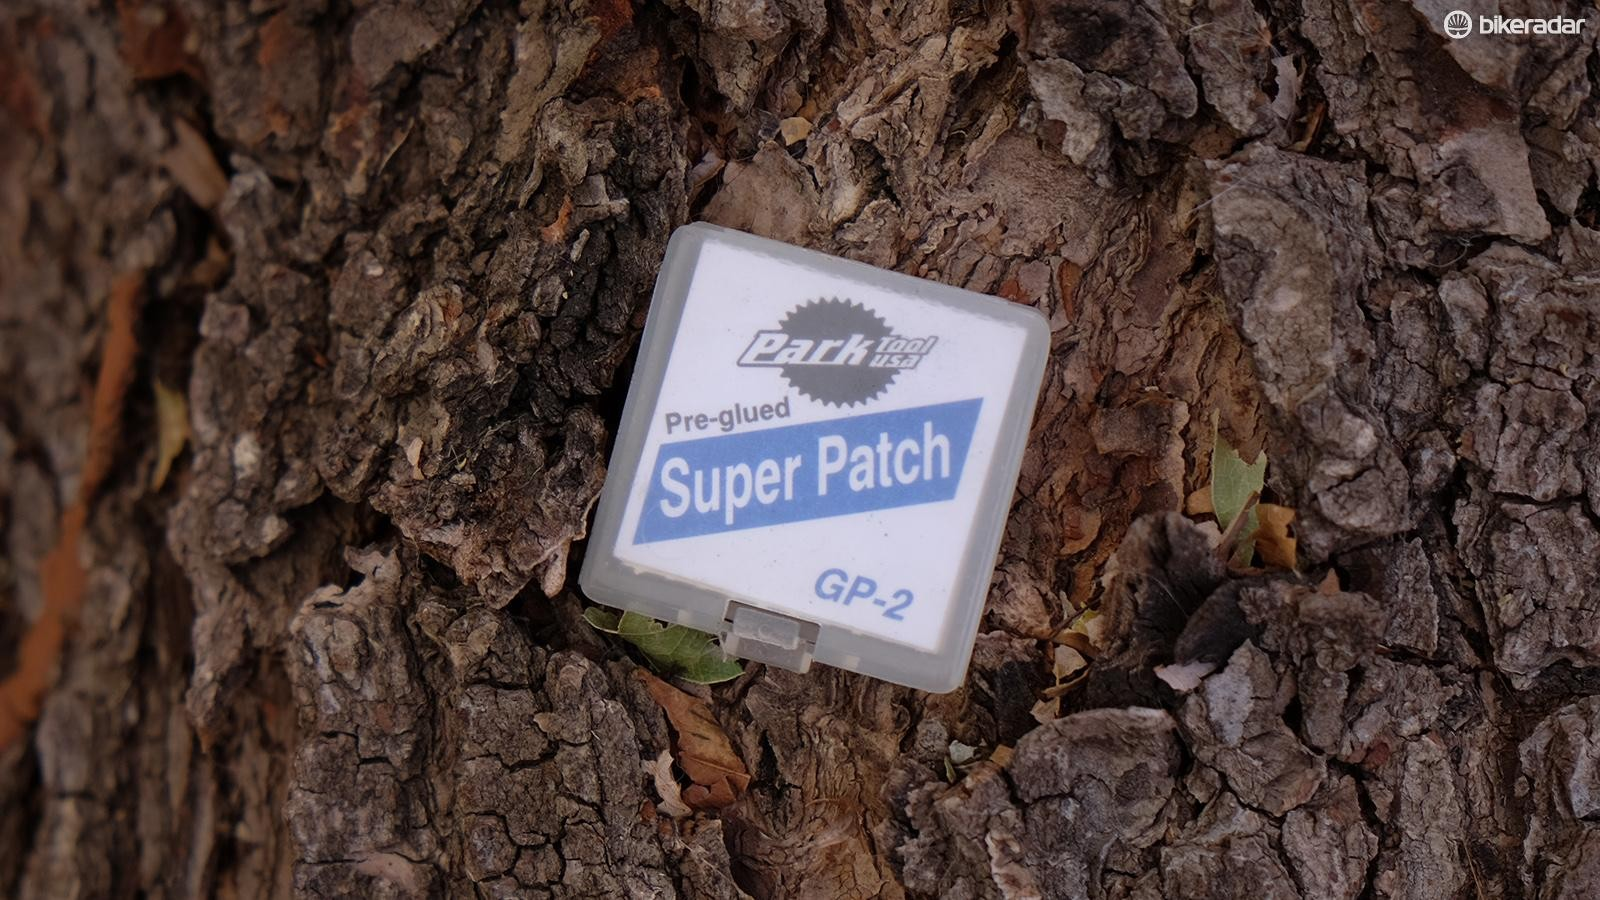 Patch kits take up very little room in your pack and are a necessity when you've used your last tube